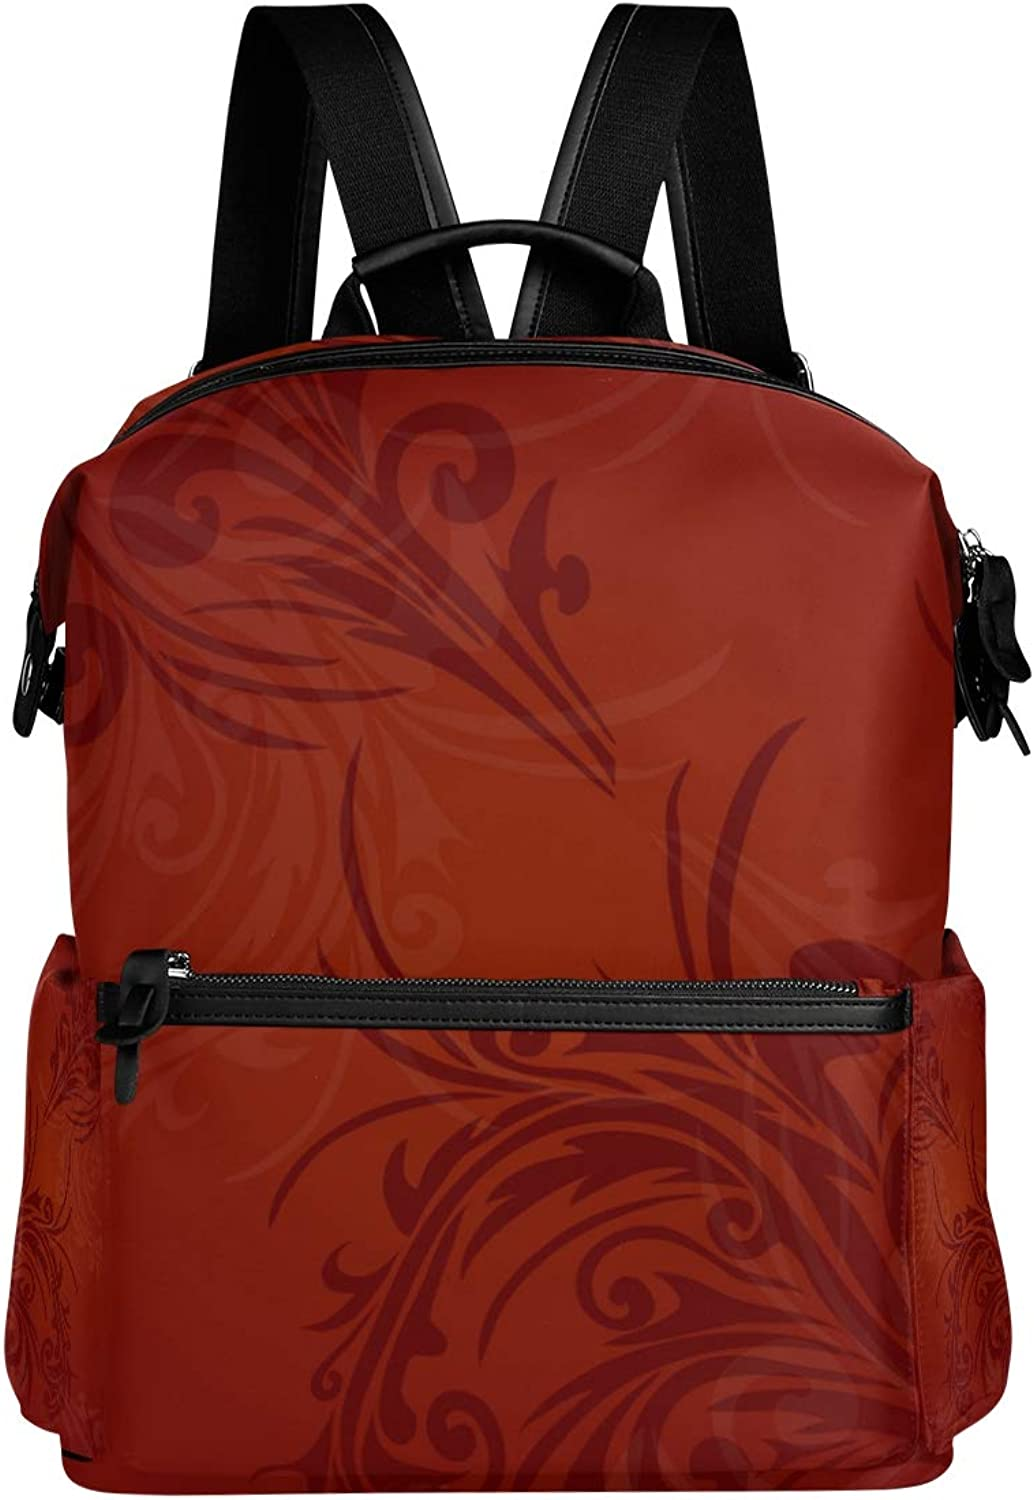 MONTOJ Beautiful Red Floral Flower Leather Travel Bag Campus Backpack